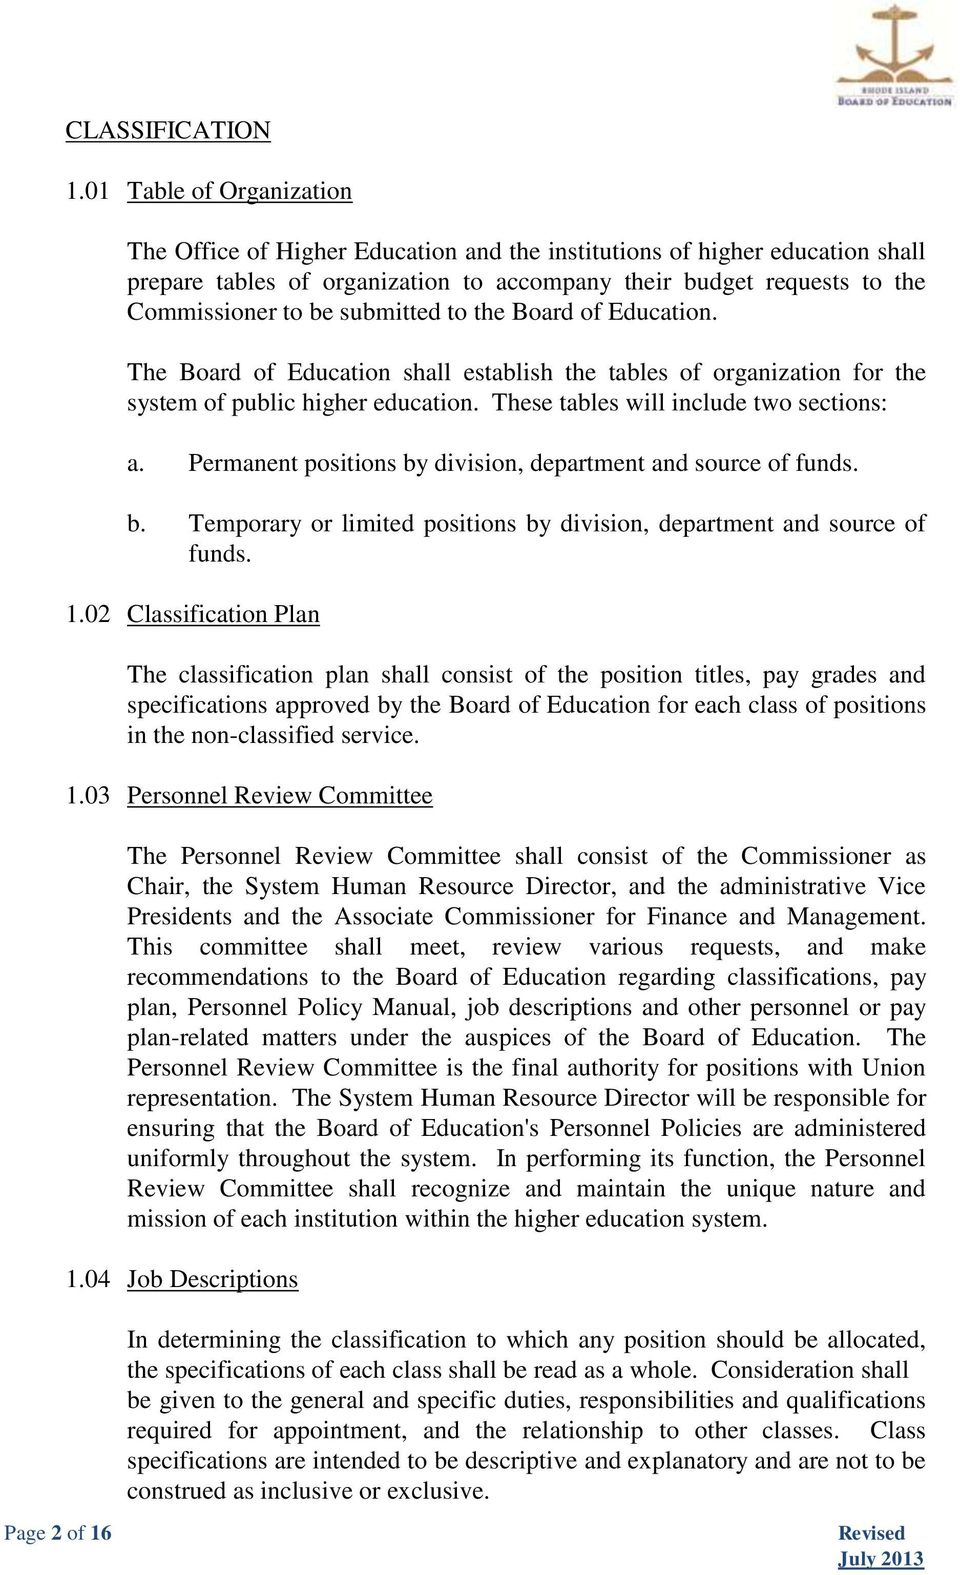 submitted to the Board of Education. The Board of Education shall establish the tables of organization for the system of public higher education. These tables will include two sections: a.